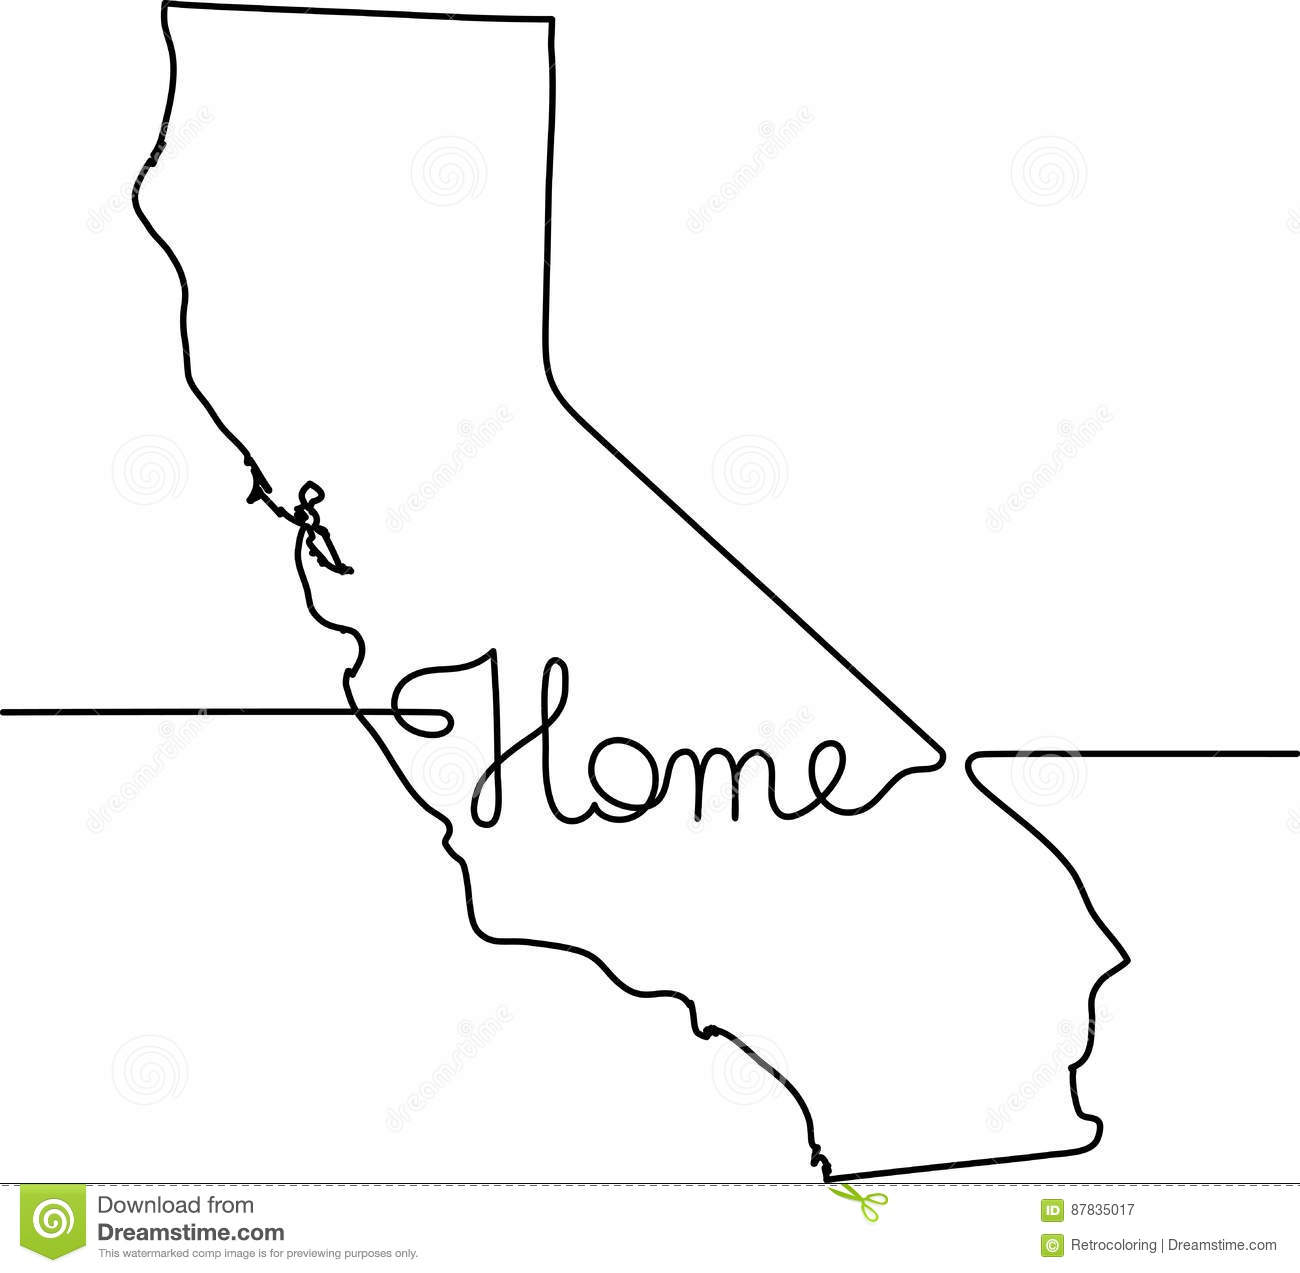 Line Art Home : Continuous line drawing of california home sign stock